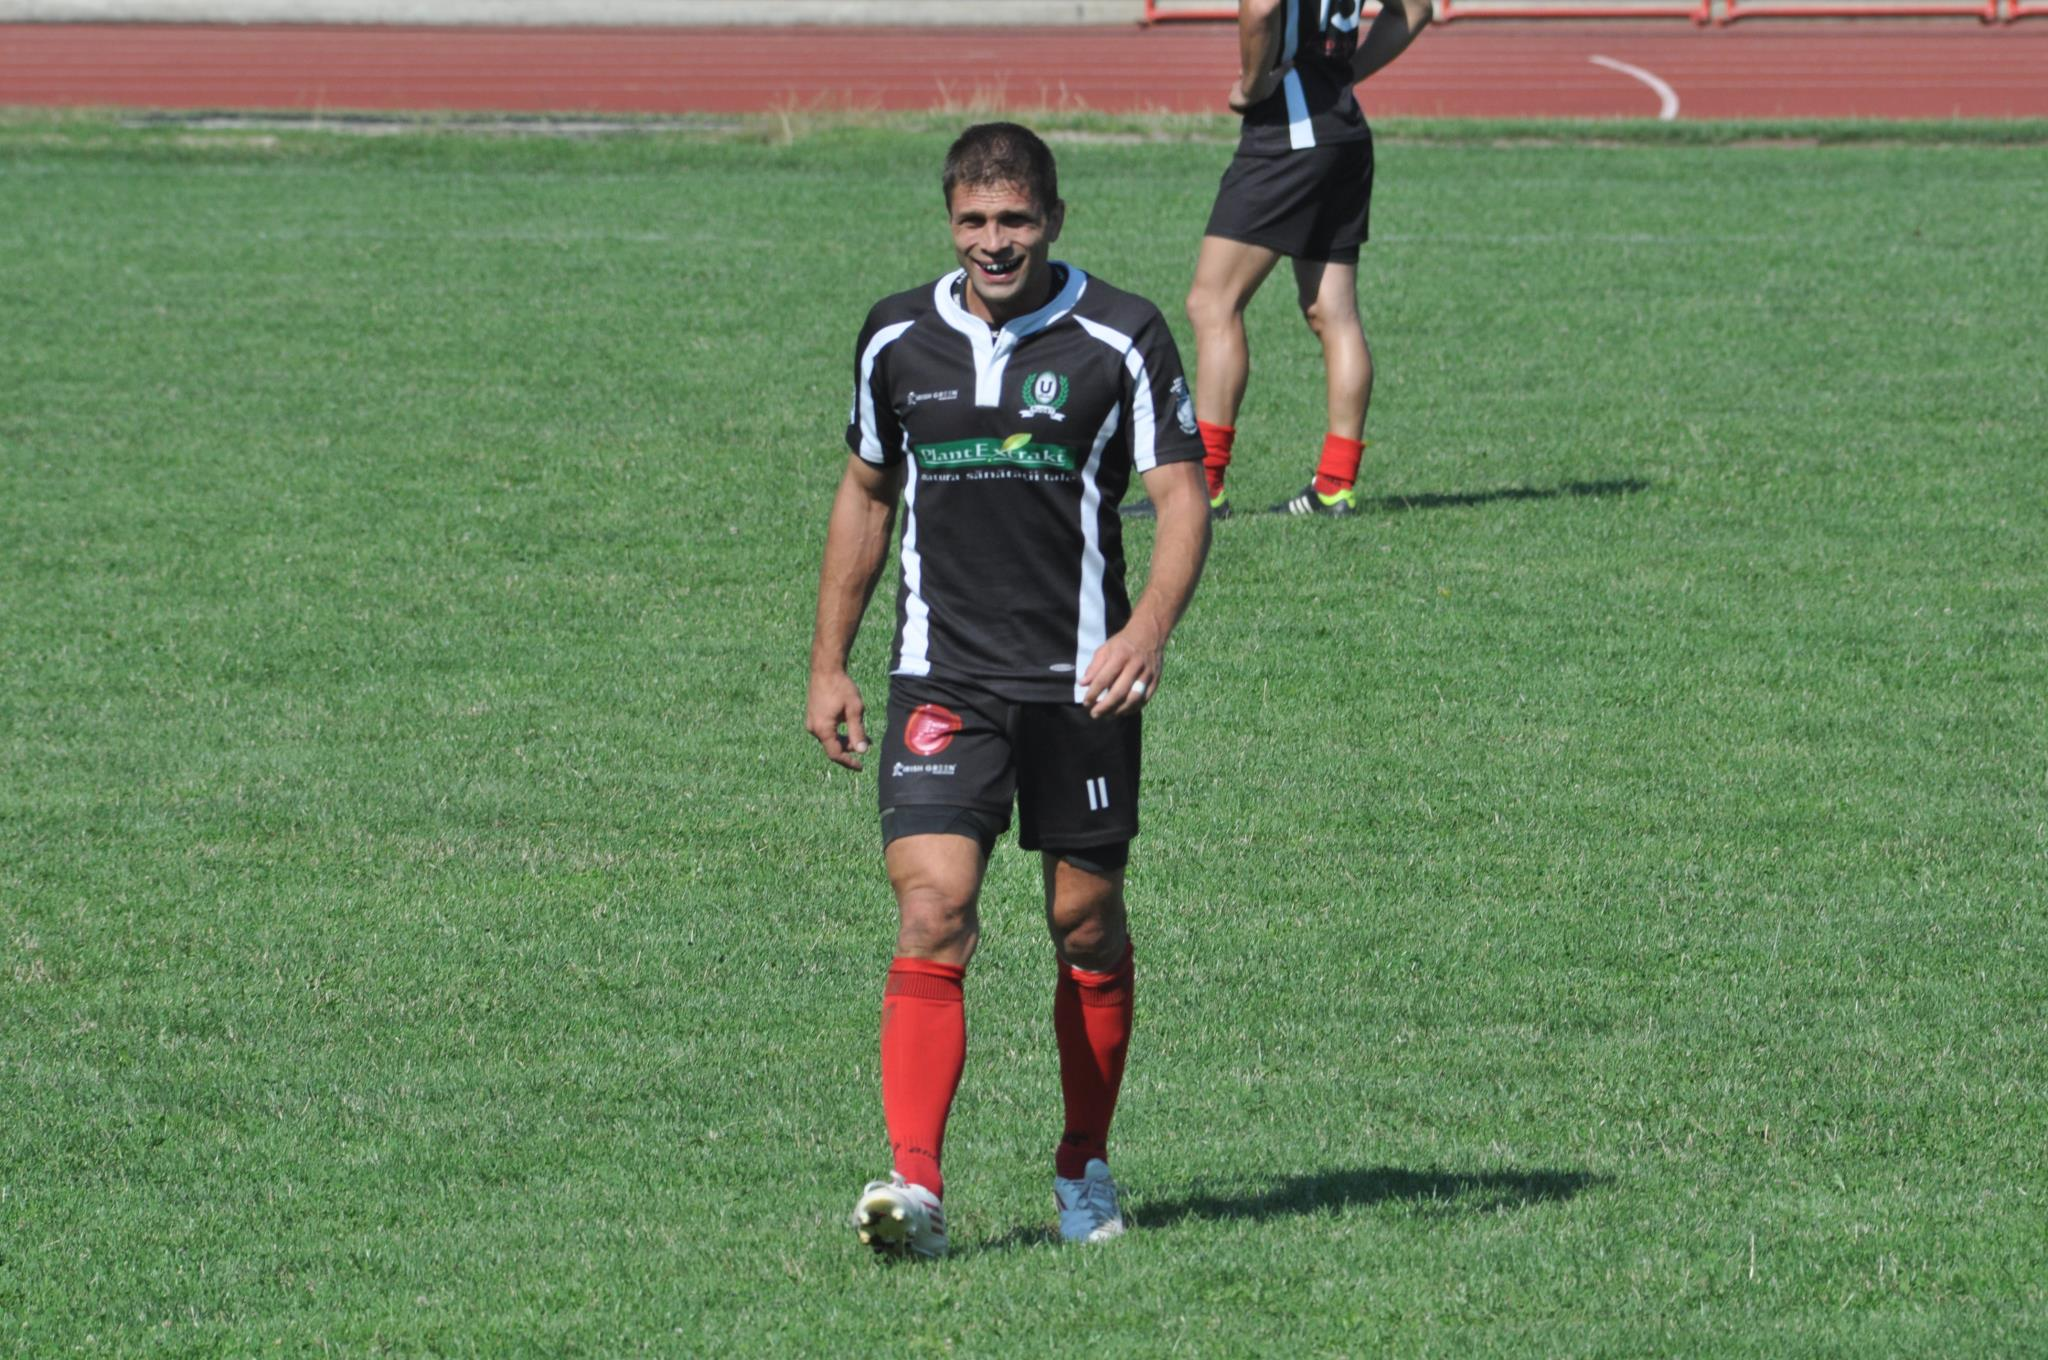 teo rugby